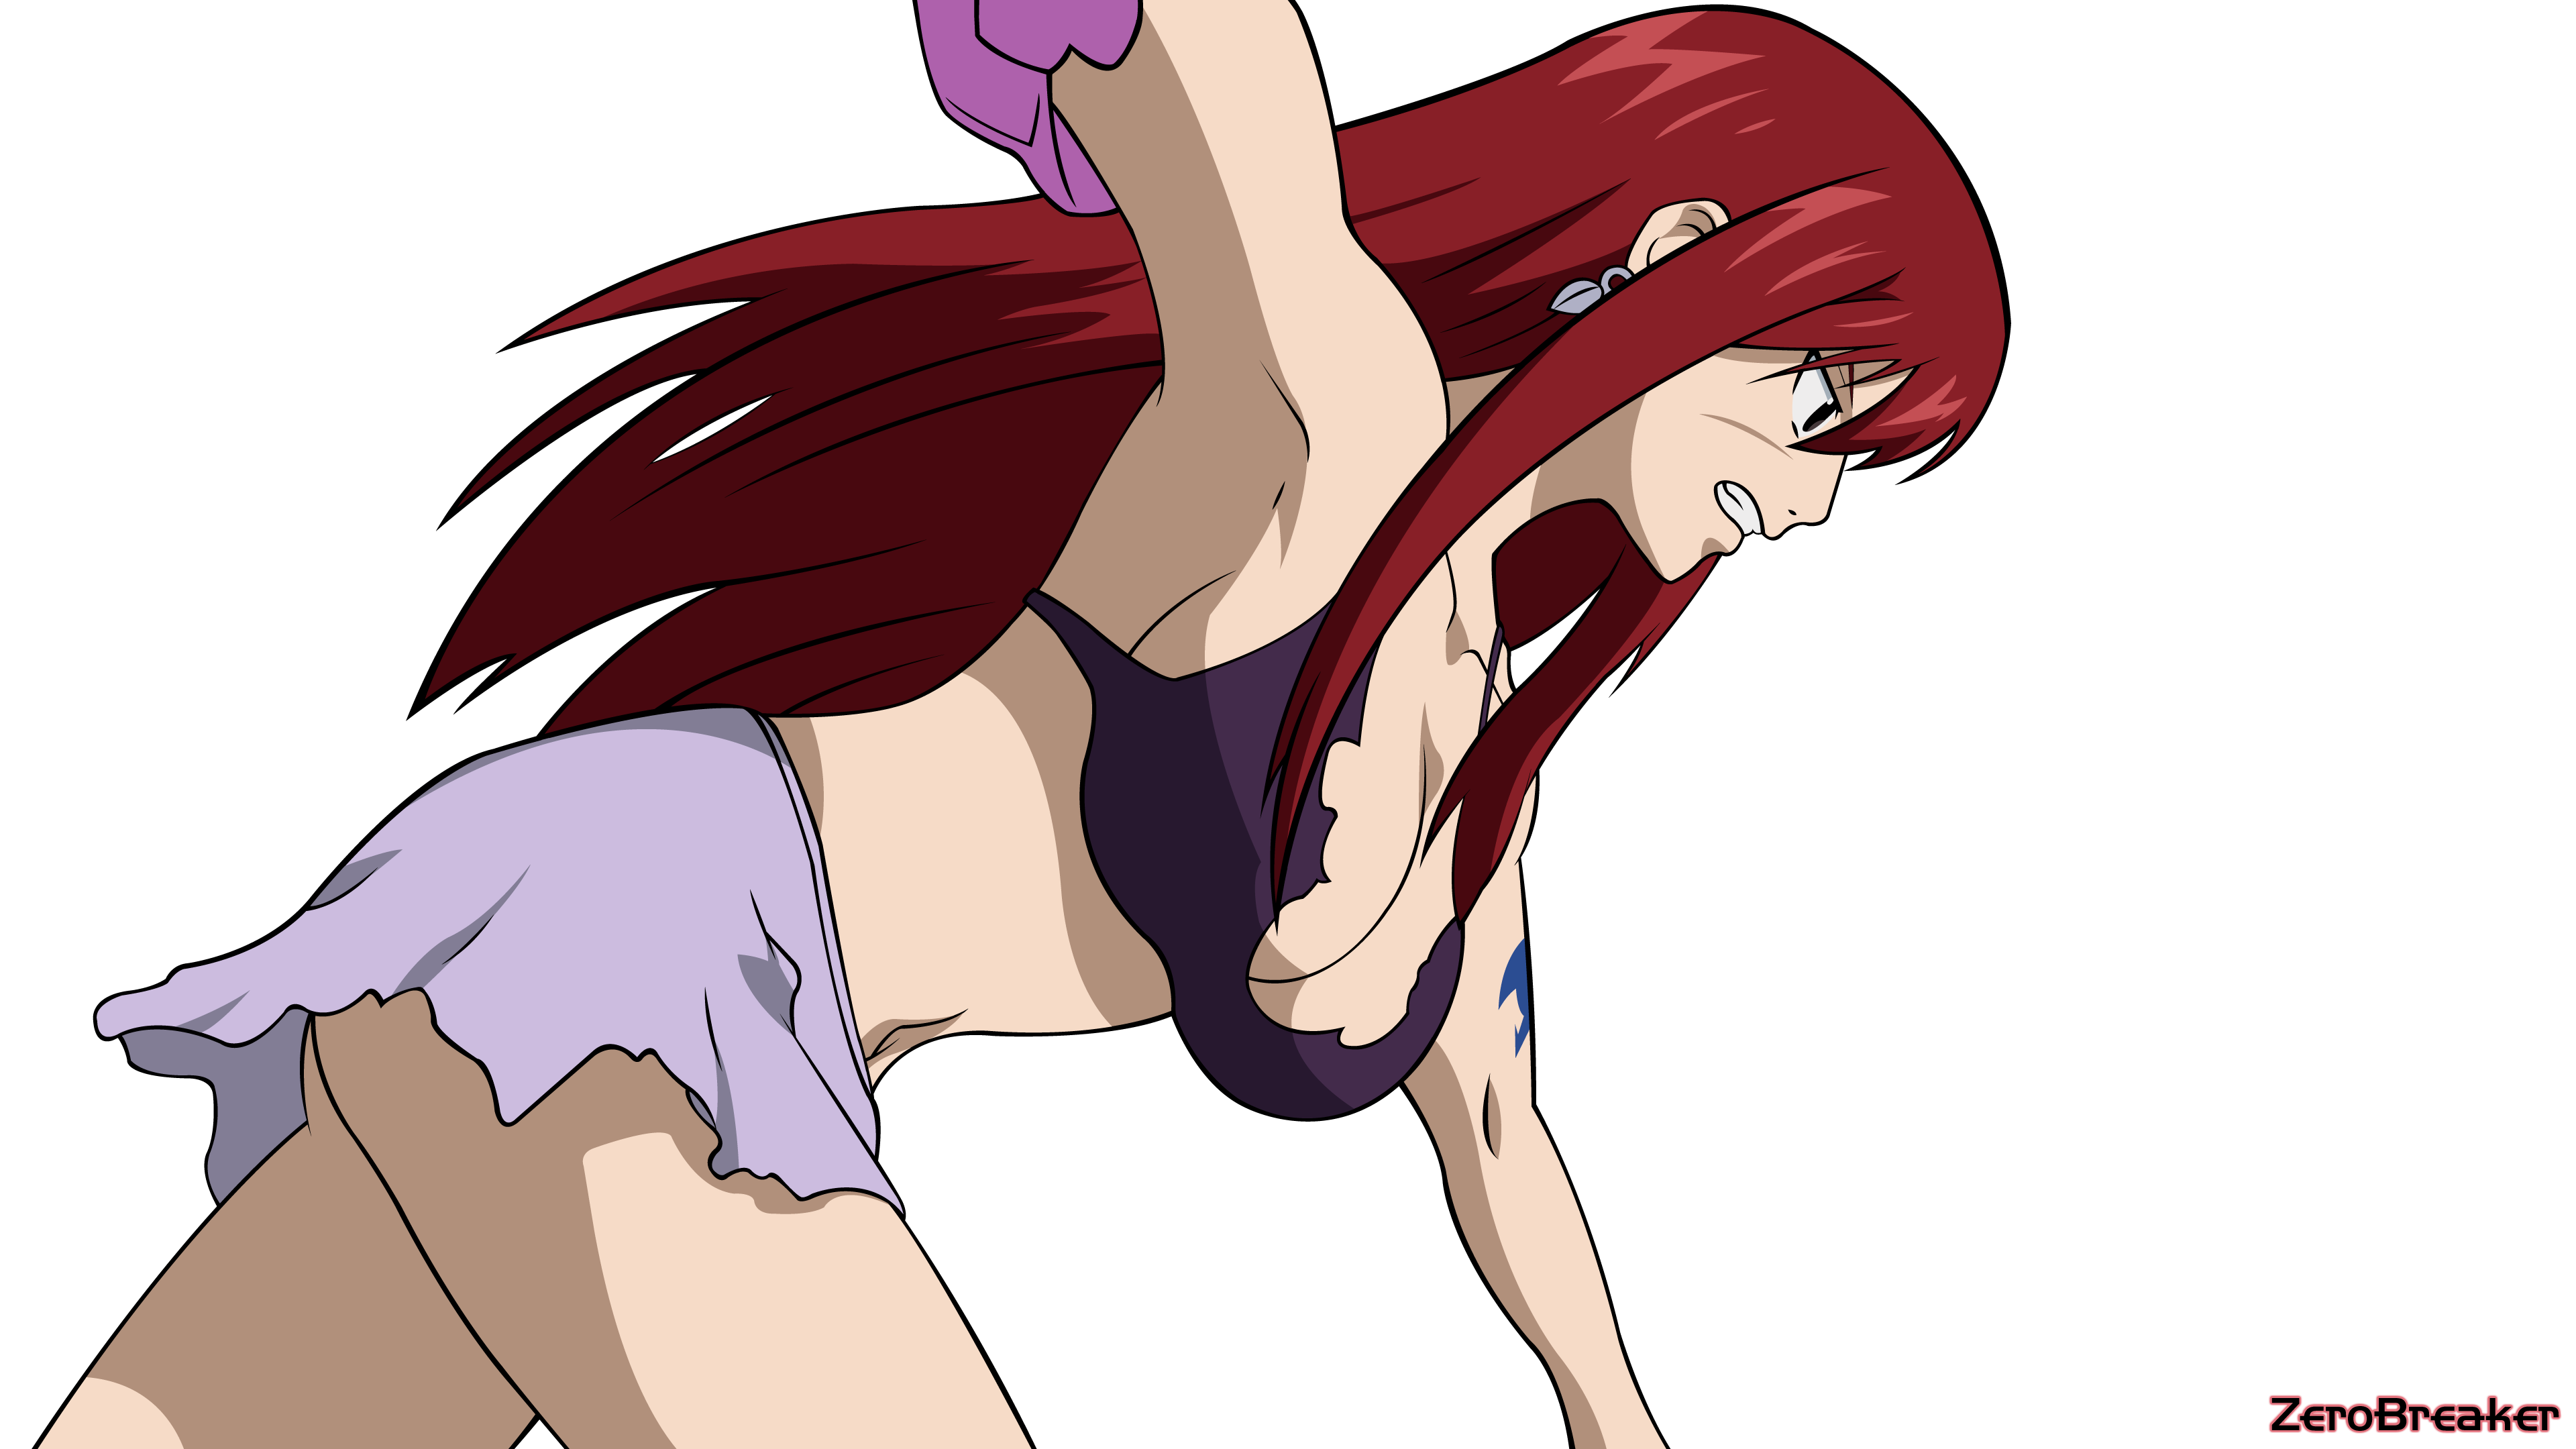 Naked girls from fairy tail sexy picture